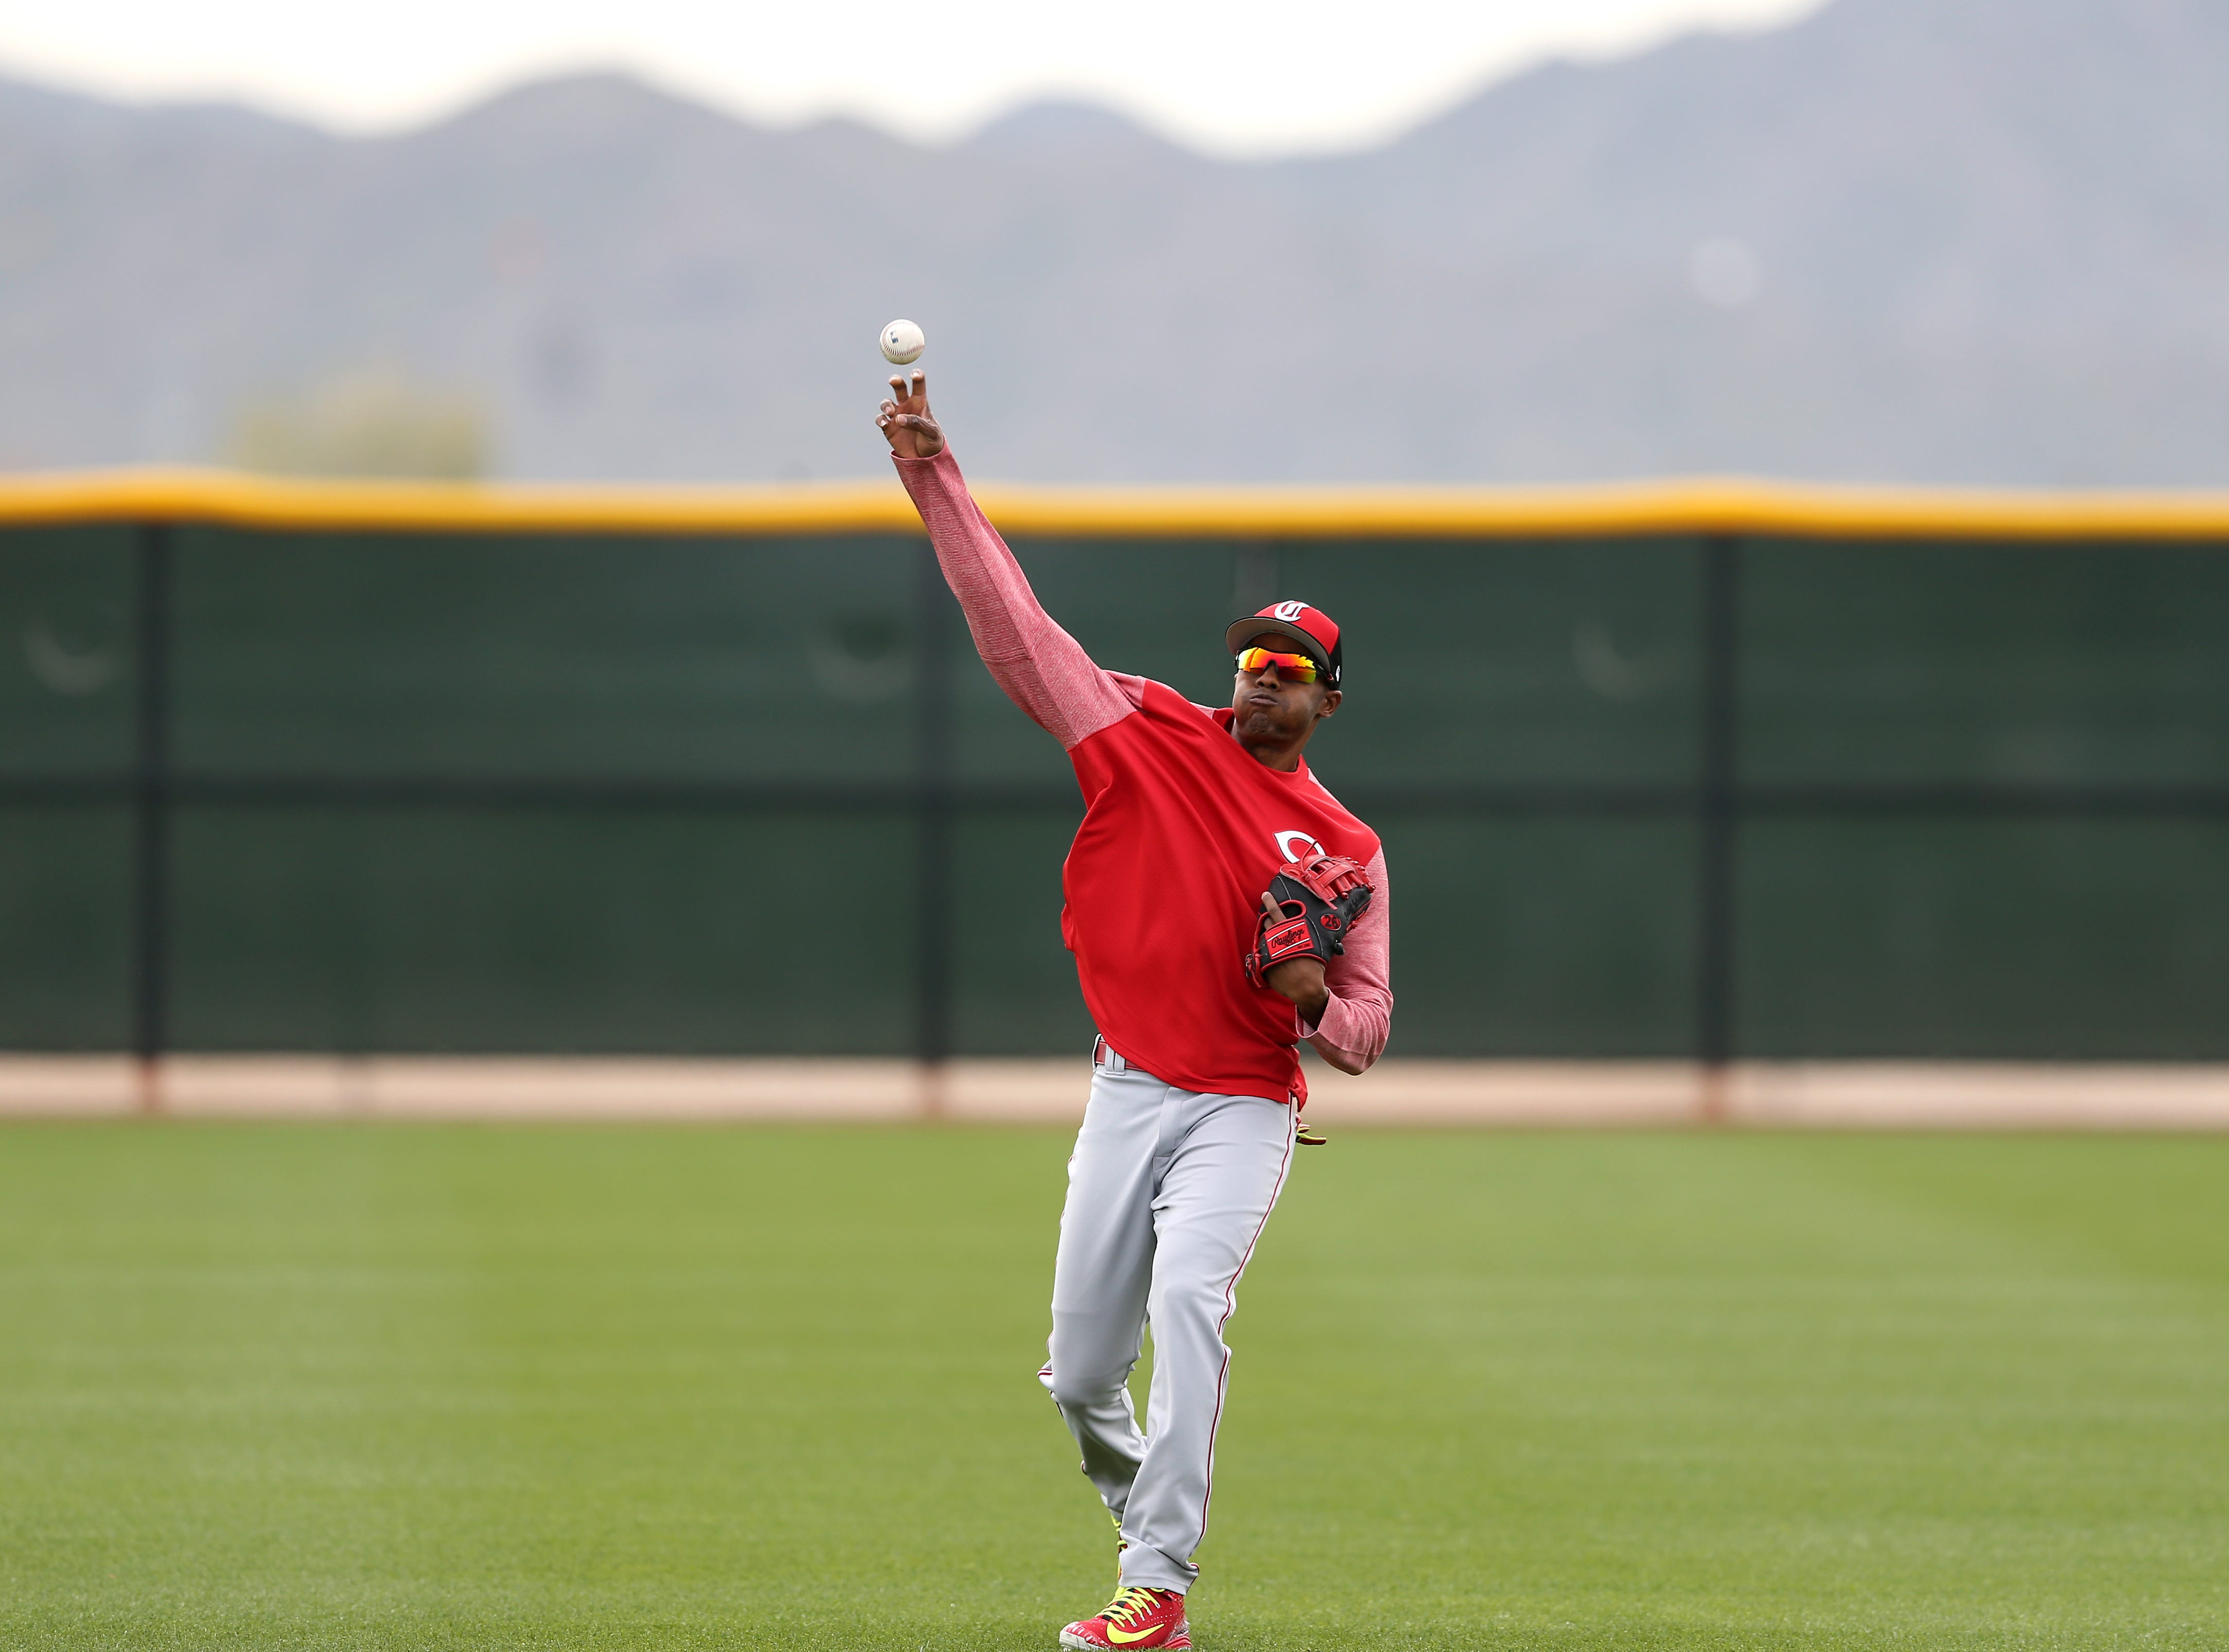 Cincinnati Reds relief pitcher Raisel Iglesias (26) long tosses, Wednesday, Feb. 13, 2019, at the Cincinnati Reds spring training facility in Goodyear, Arizona.